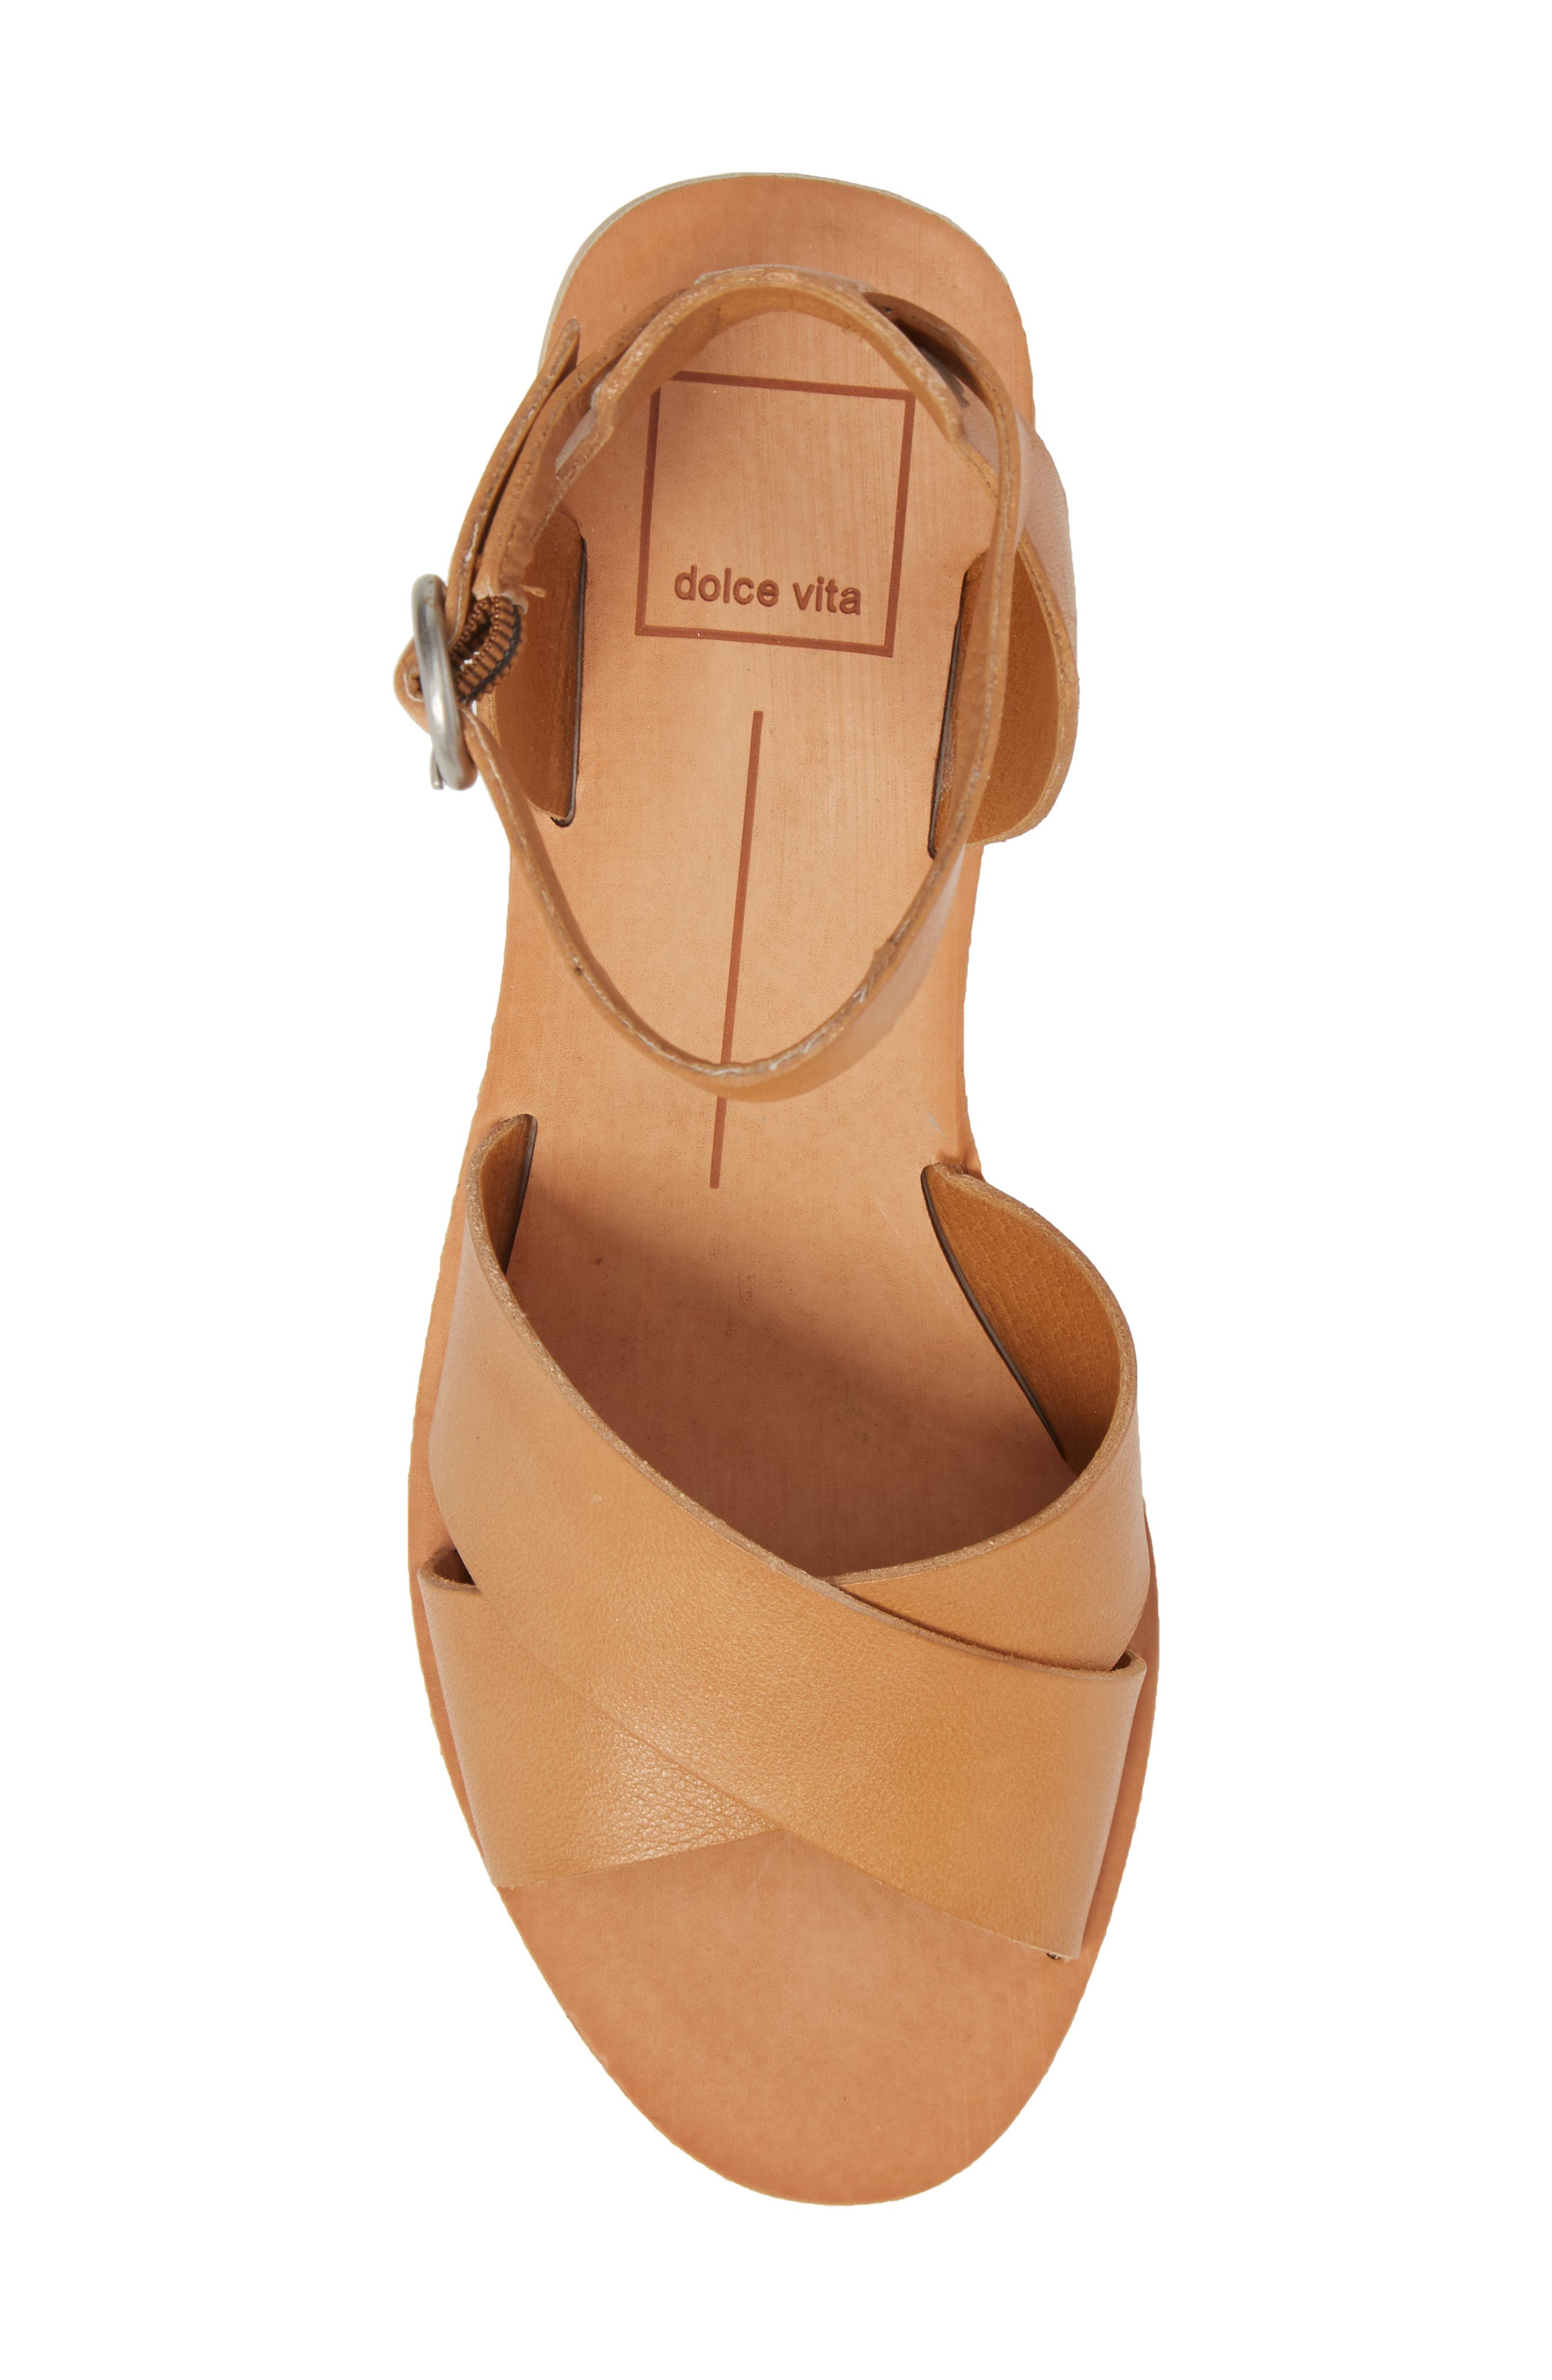 Roman Flared Heel Sandal,                             Alternate thumbnail 5, color,                             Caramel Leather